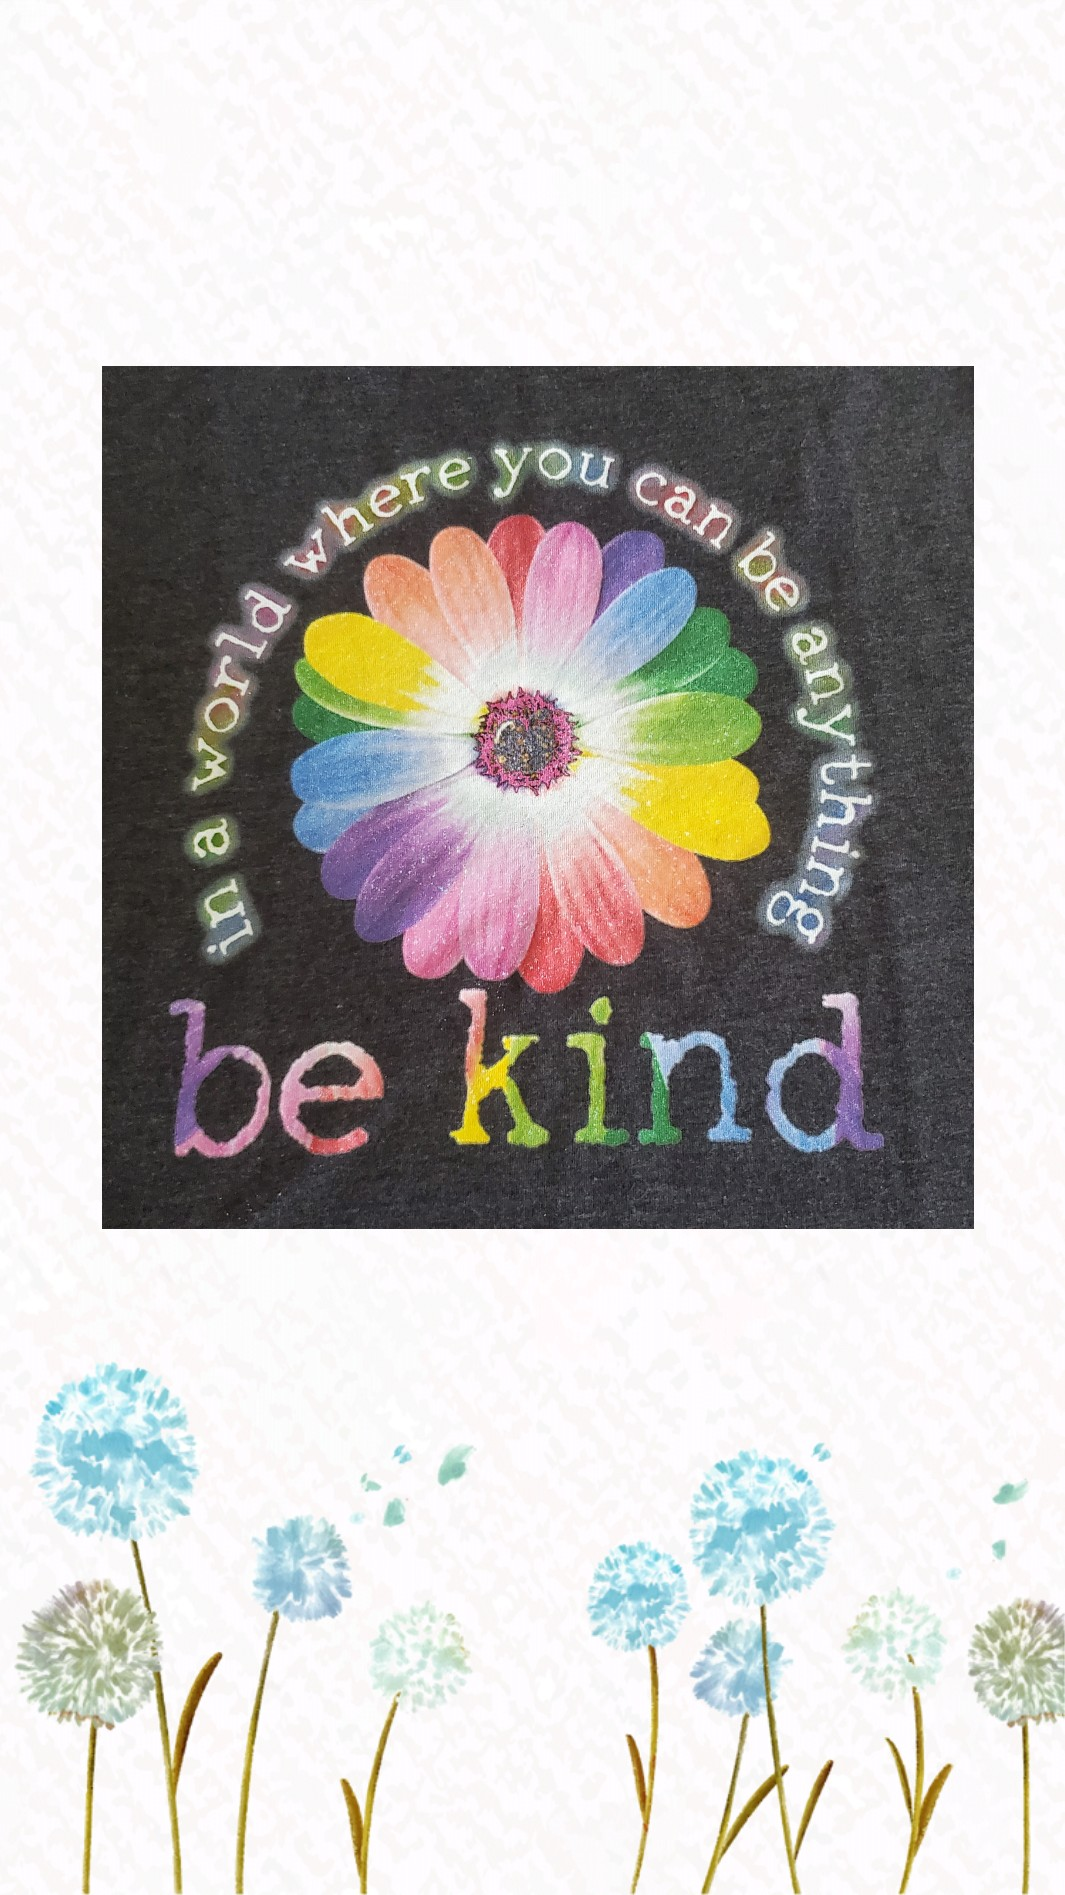 IN A WORLD WHERE YOU CAN BE ANYTHING..BE KIND